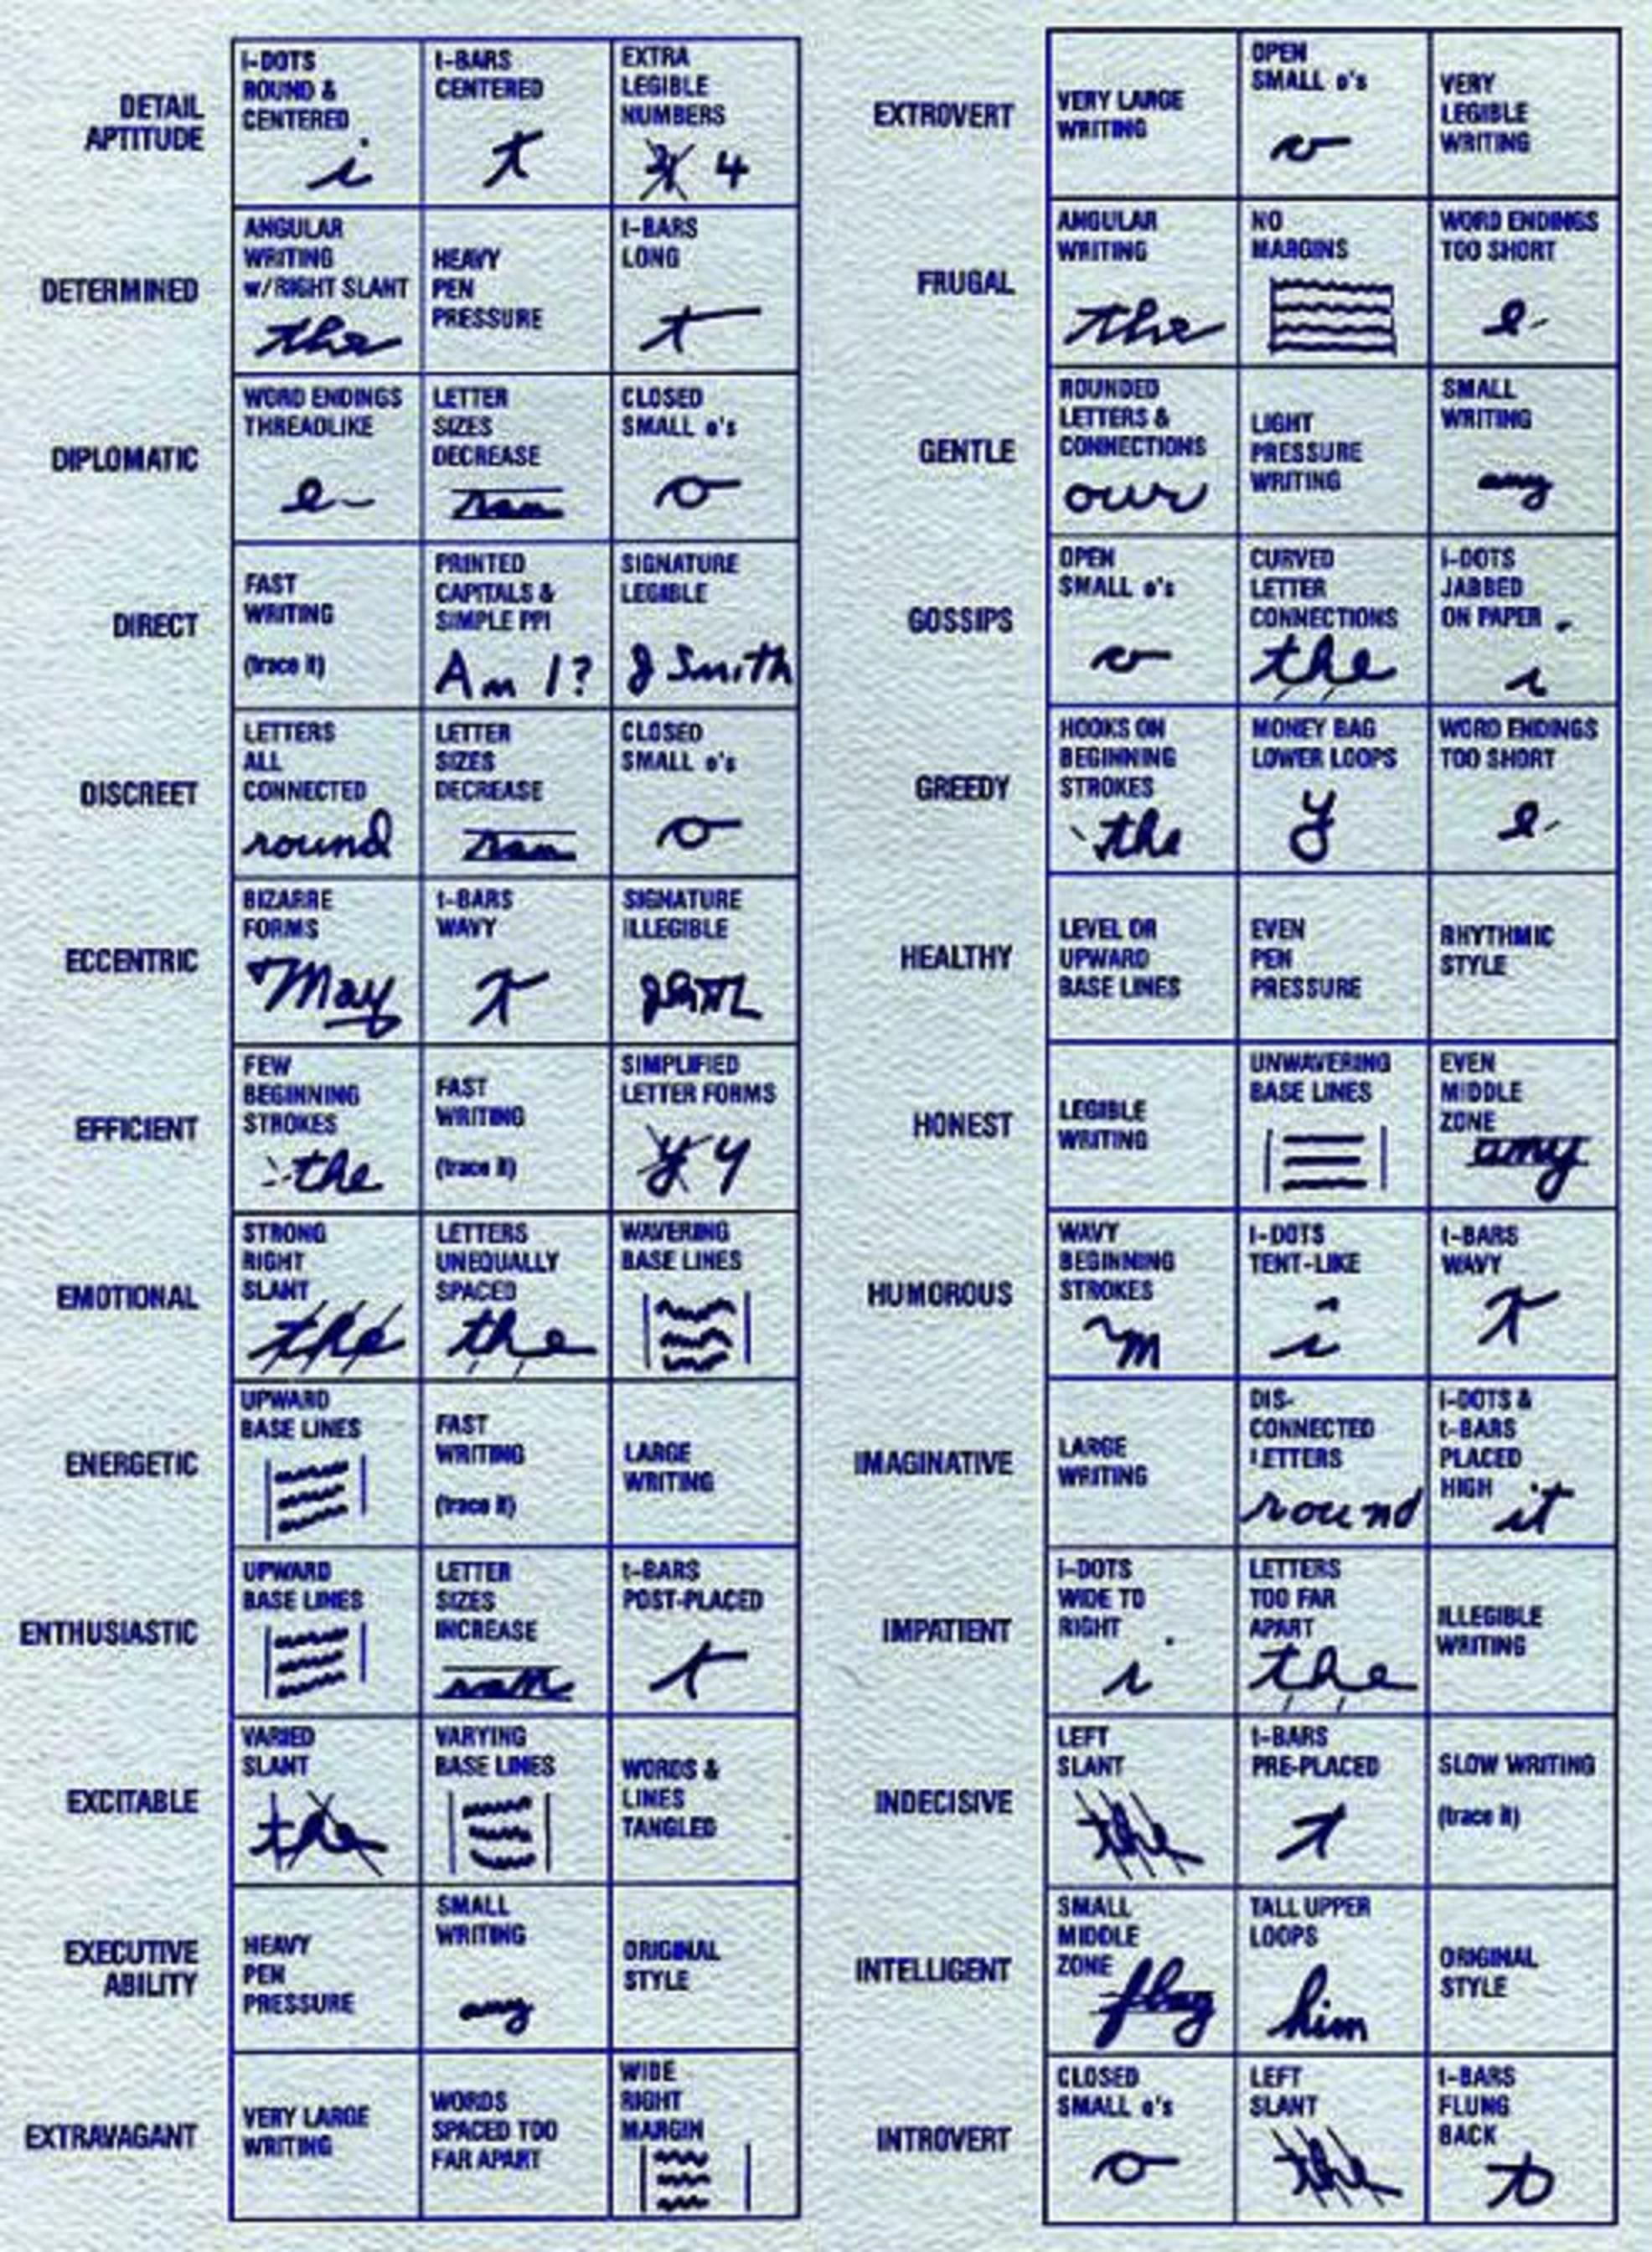 Handwriting analysis chart 2 human behavior handwriting